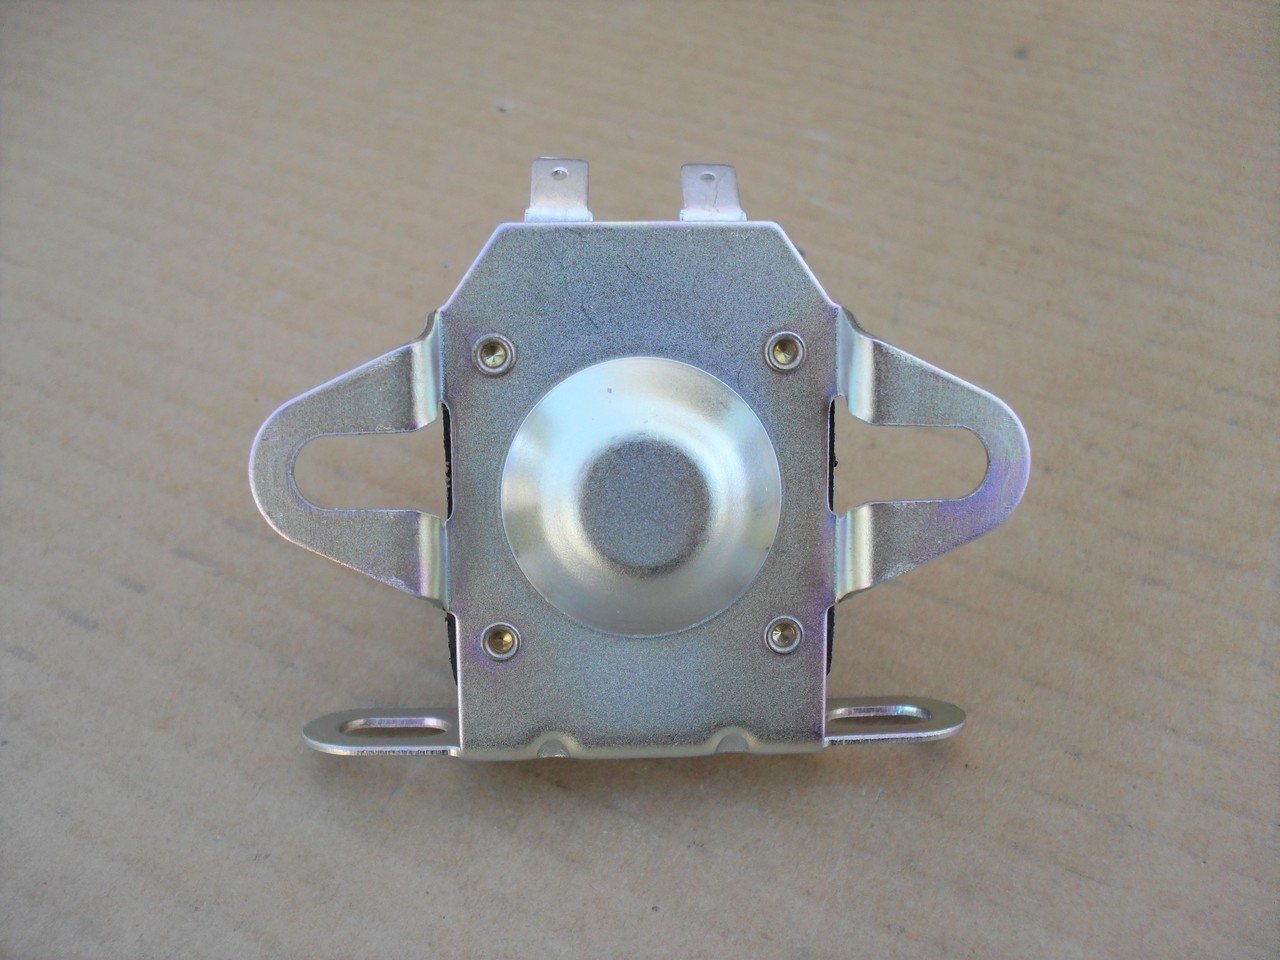 New STARTER SOLENOID for Simplicity 1686981YP 1686982 1686982SM 170051 170051SM